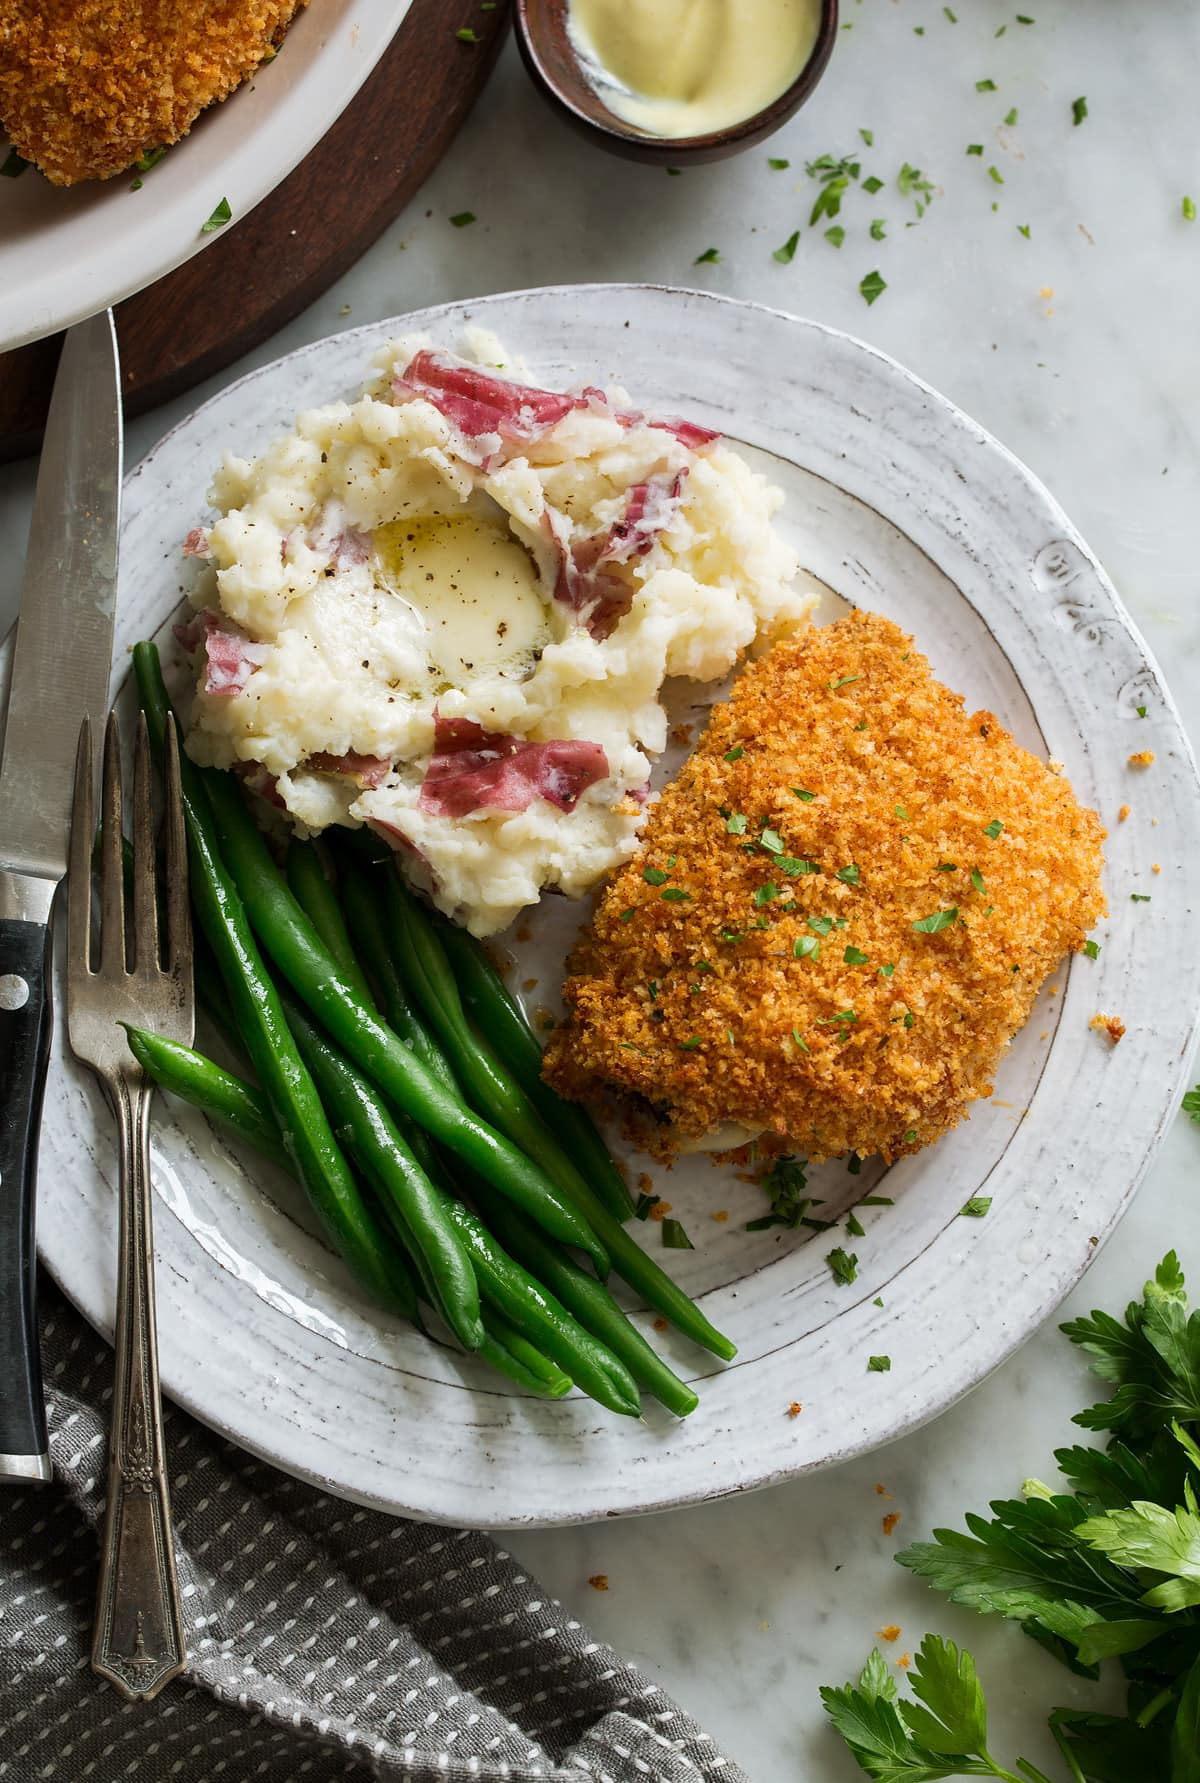 Oven Fried Chicken on serving plate with a side of mashed potatoes and green beans.